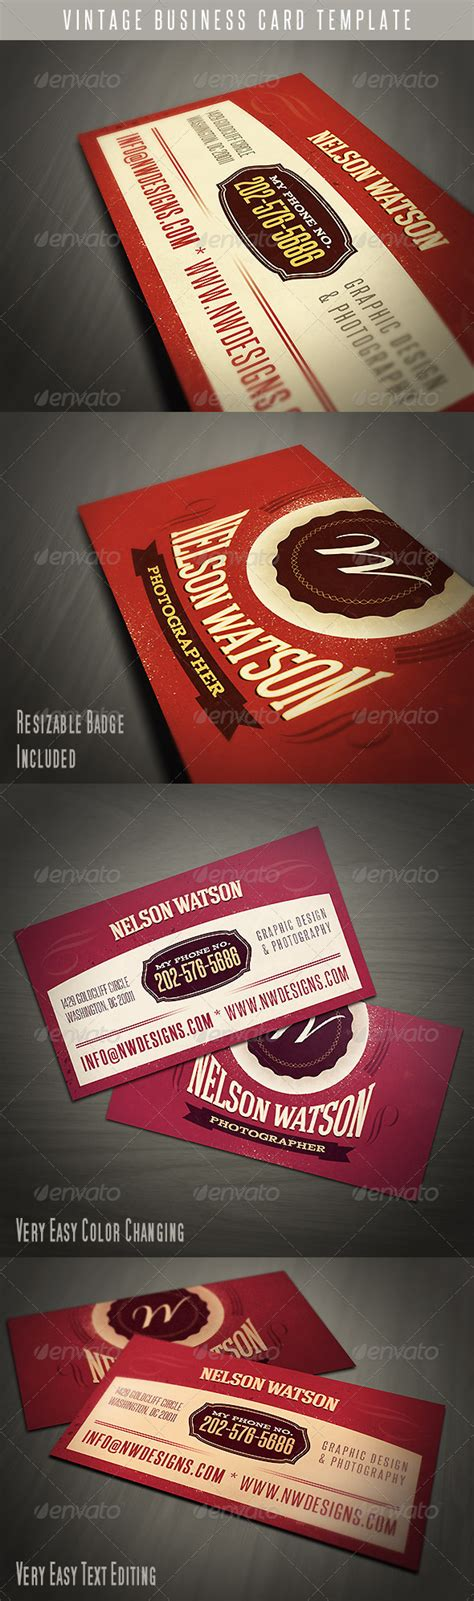 antique business card template vintage business card template by vilord graphicriver